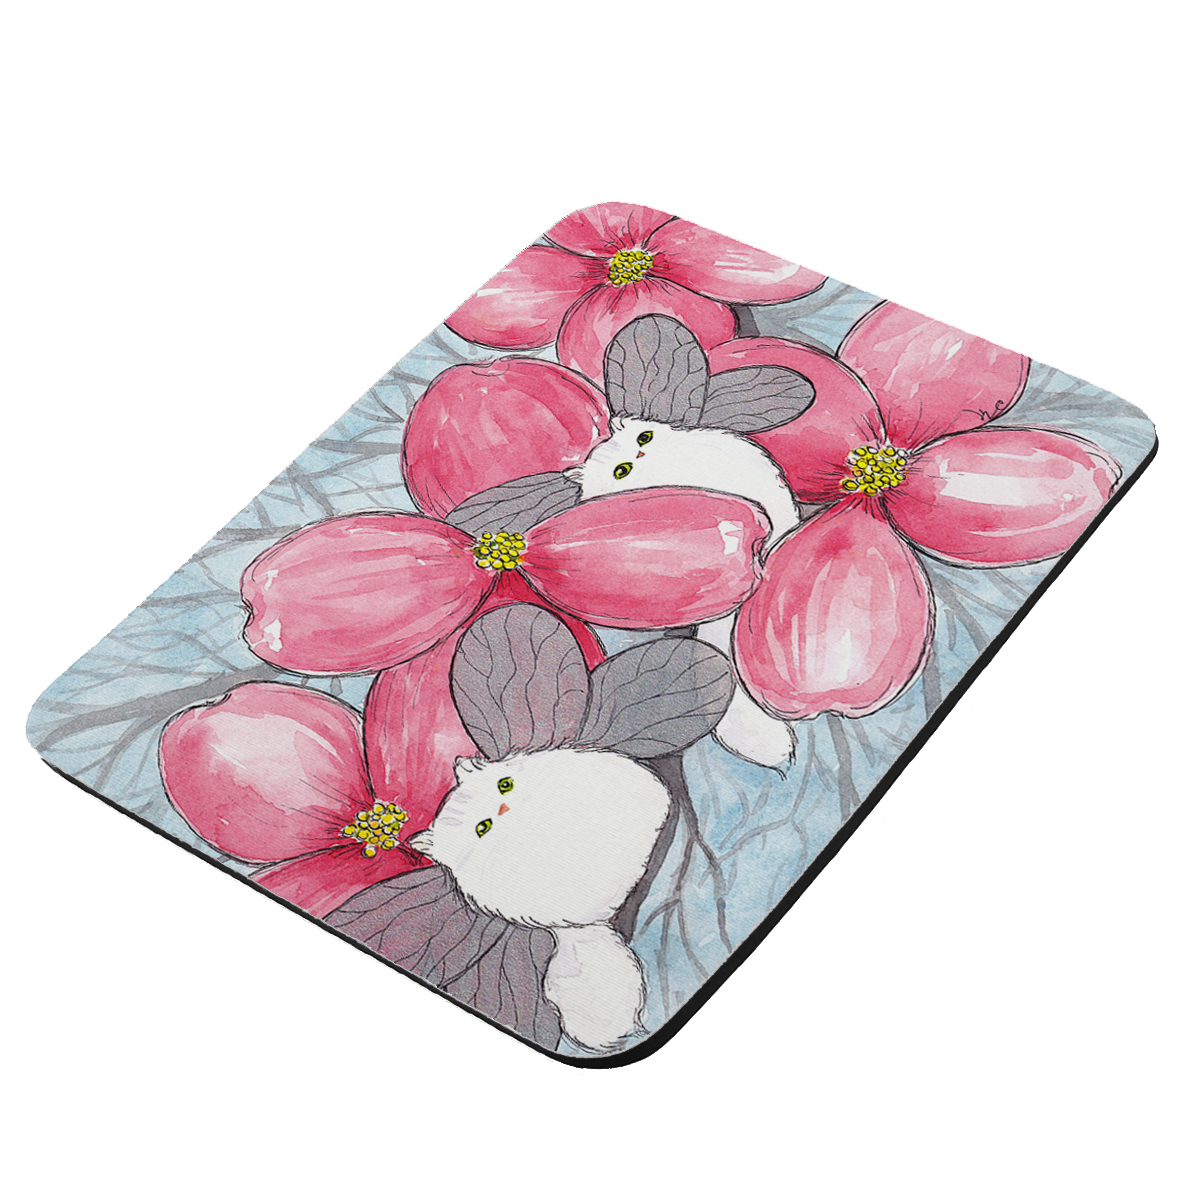 Silver Chincilla Persian Kitty Fairies with Pink Dogwood Fantasy Cat Art by Denise Every - KuzmarK Mousepad / Hot Pad / Trivet